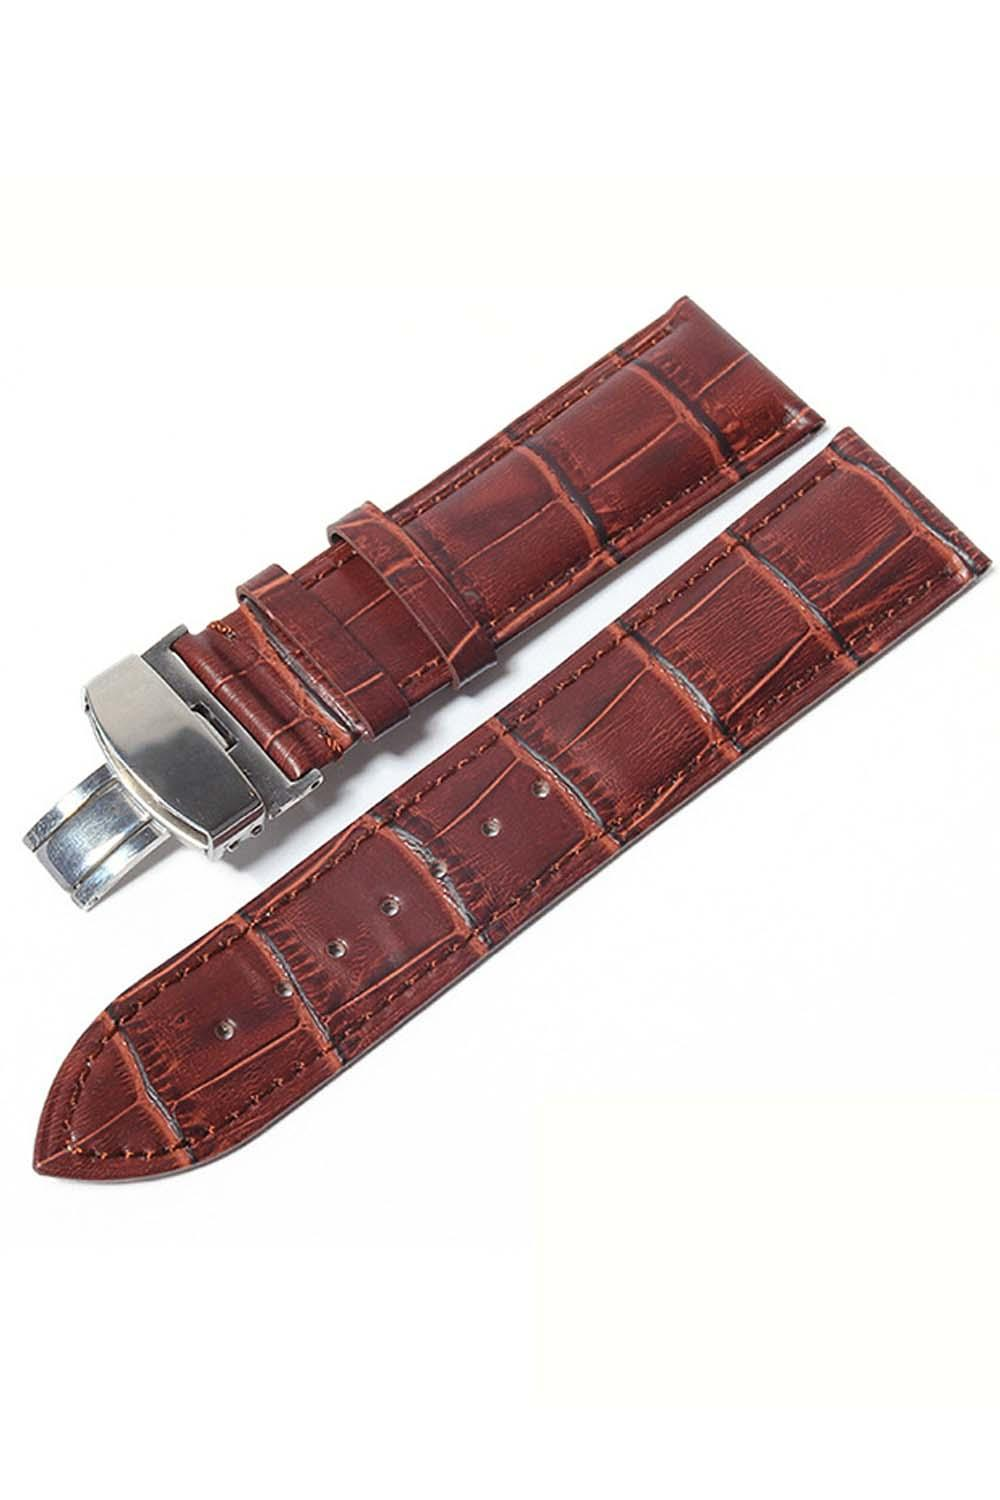 PU Leather Waterproof Adjustable Replacement Watchband Watch Band Strap Belt with Folding Clasp for 22mm Watch Lug Brown Malaysia